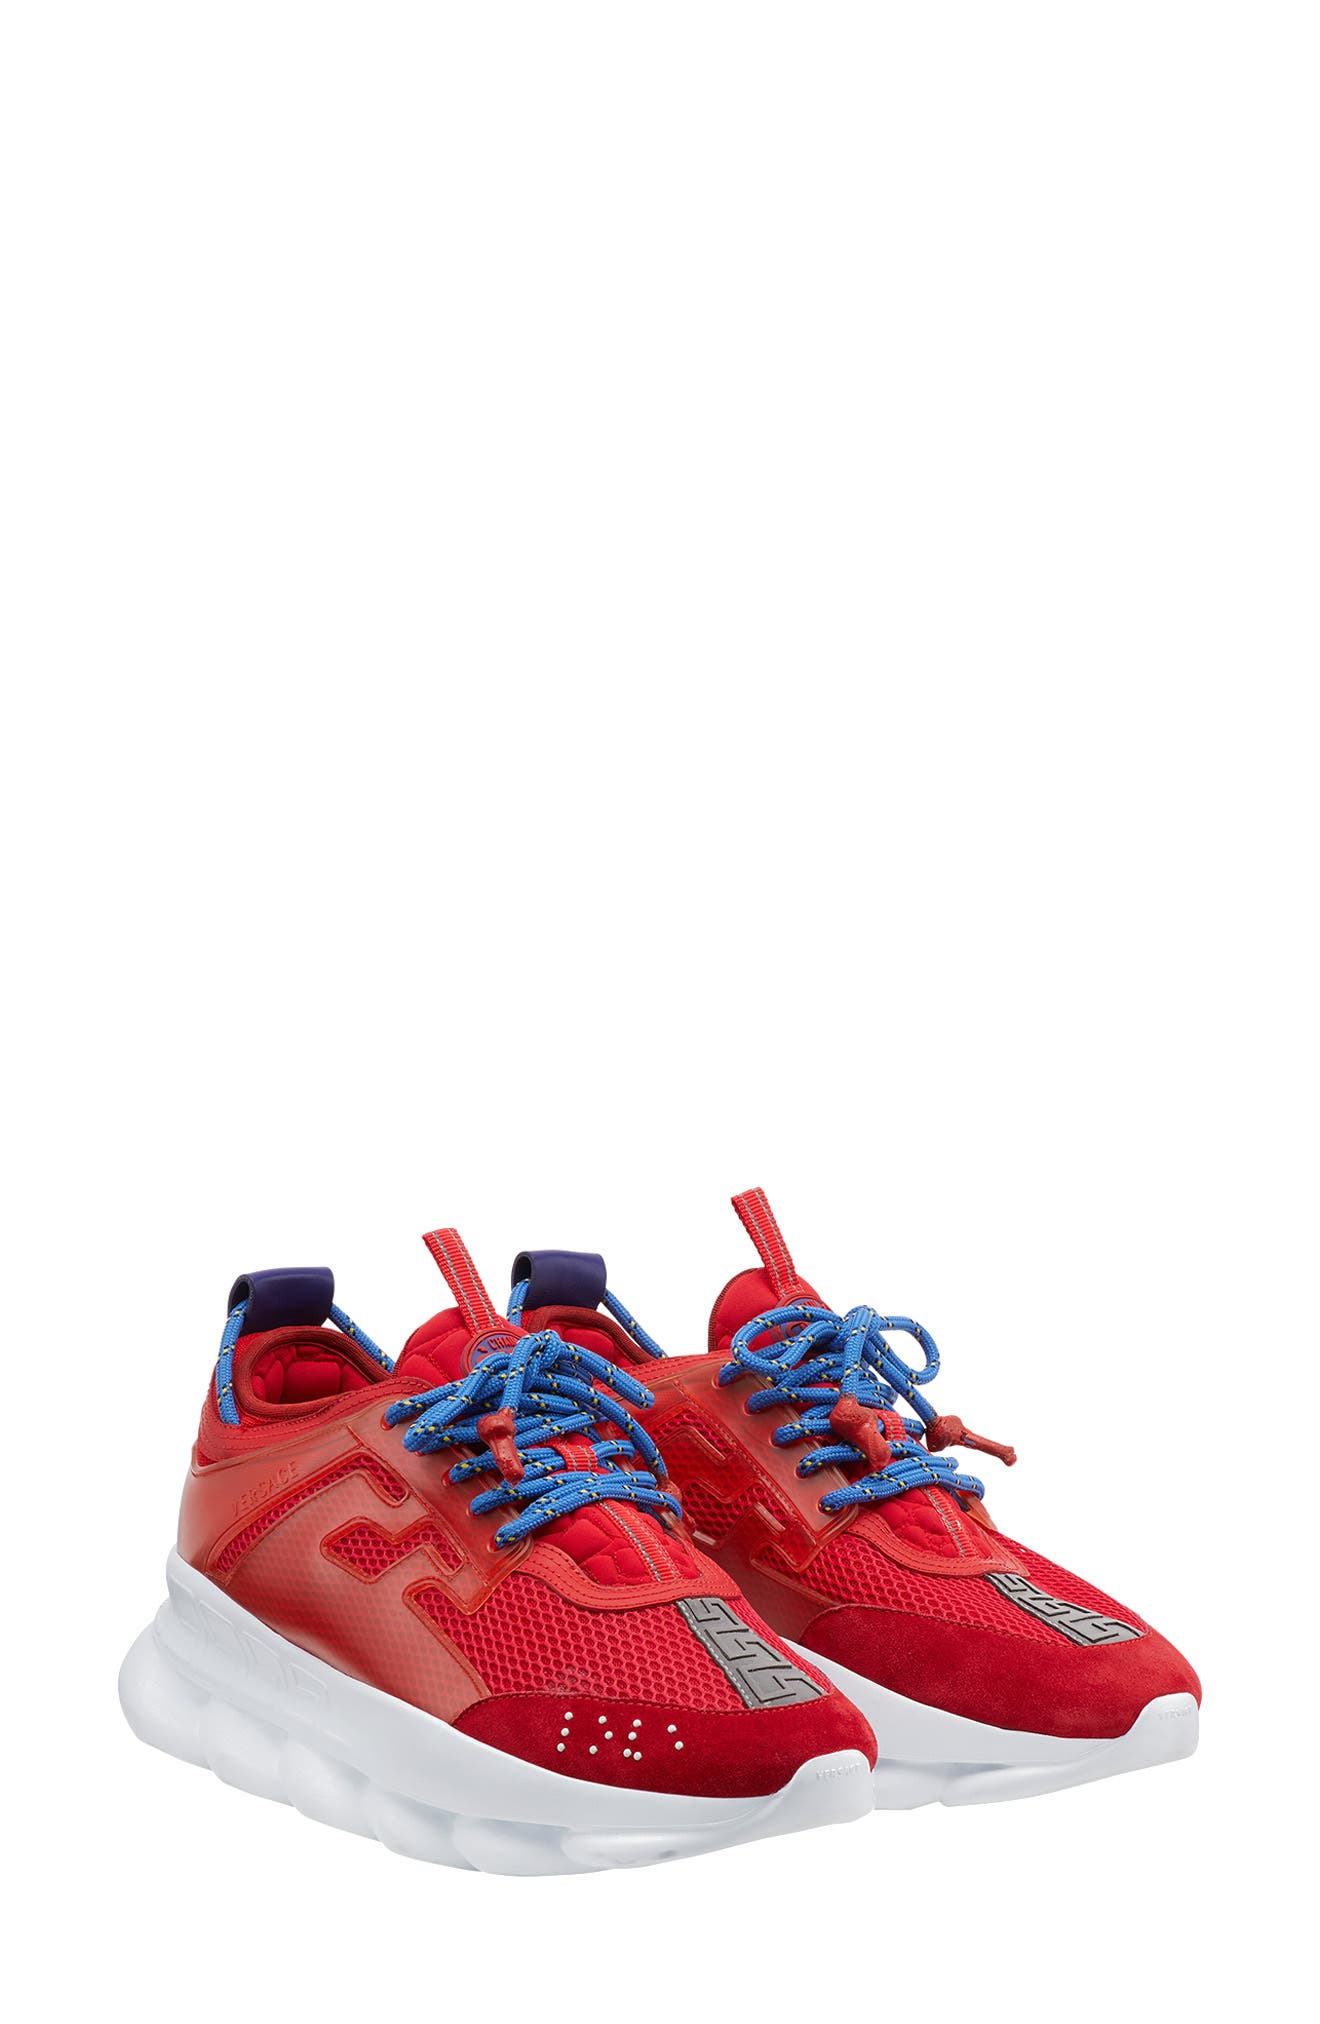 Versace Chain Reaction Sneaker,                             Main thumbnail 1, color,                             RED